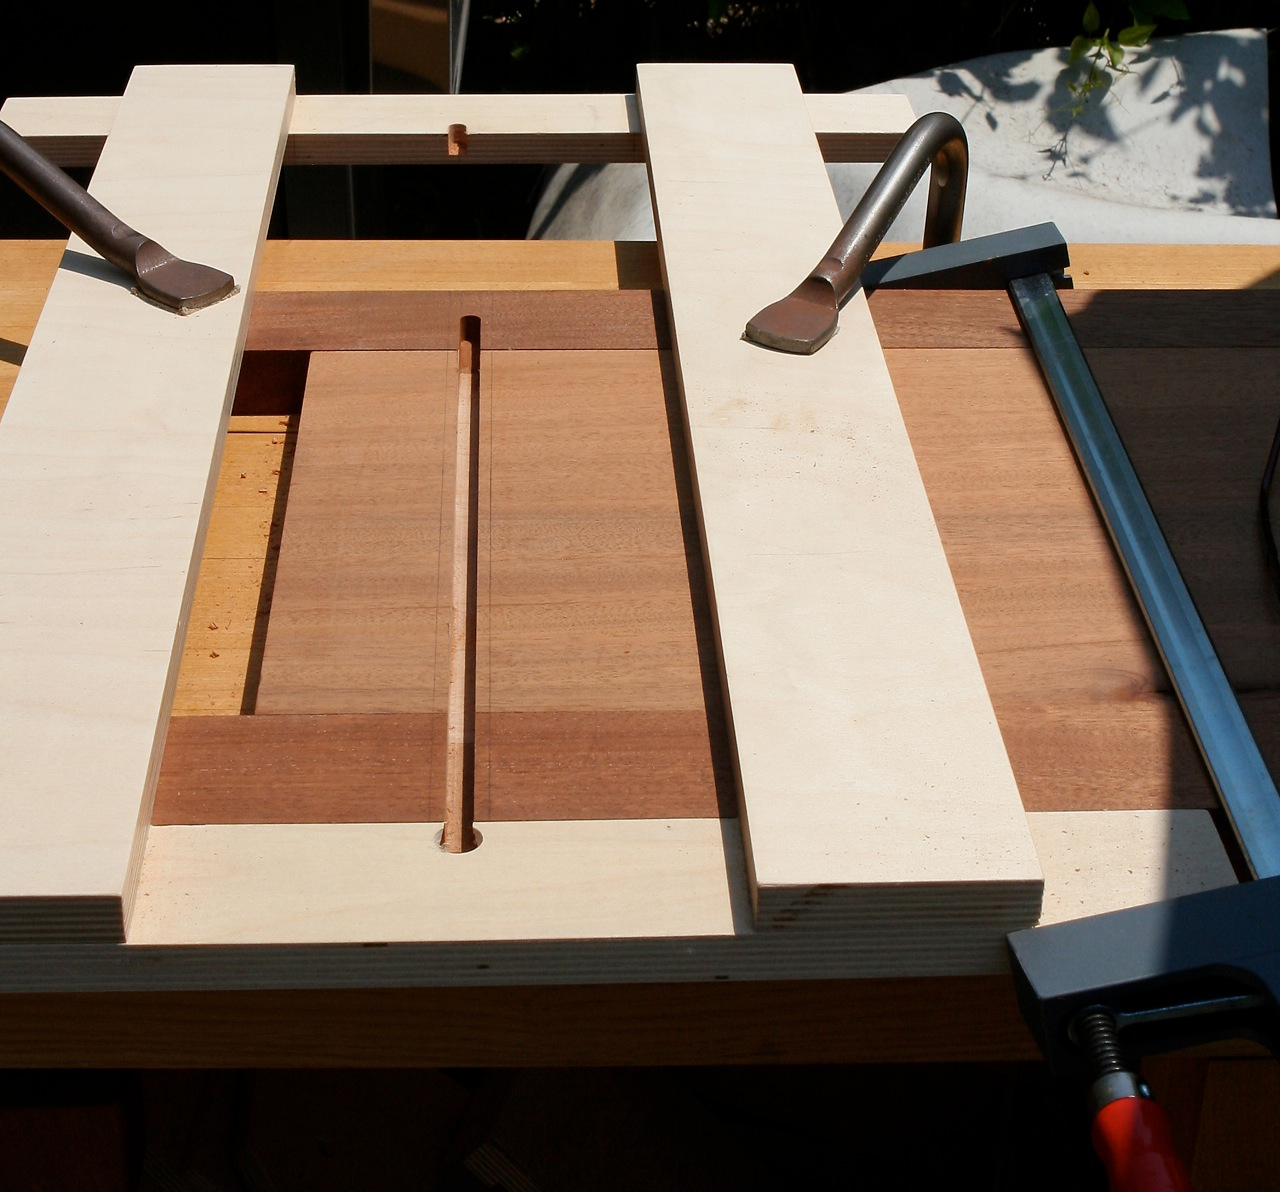 Sliding dovetail slot after routing